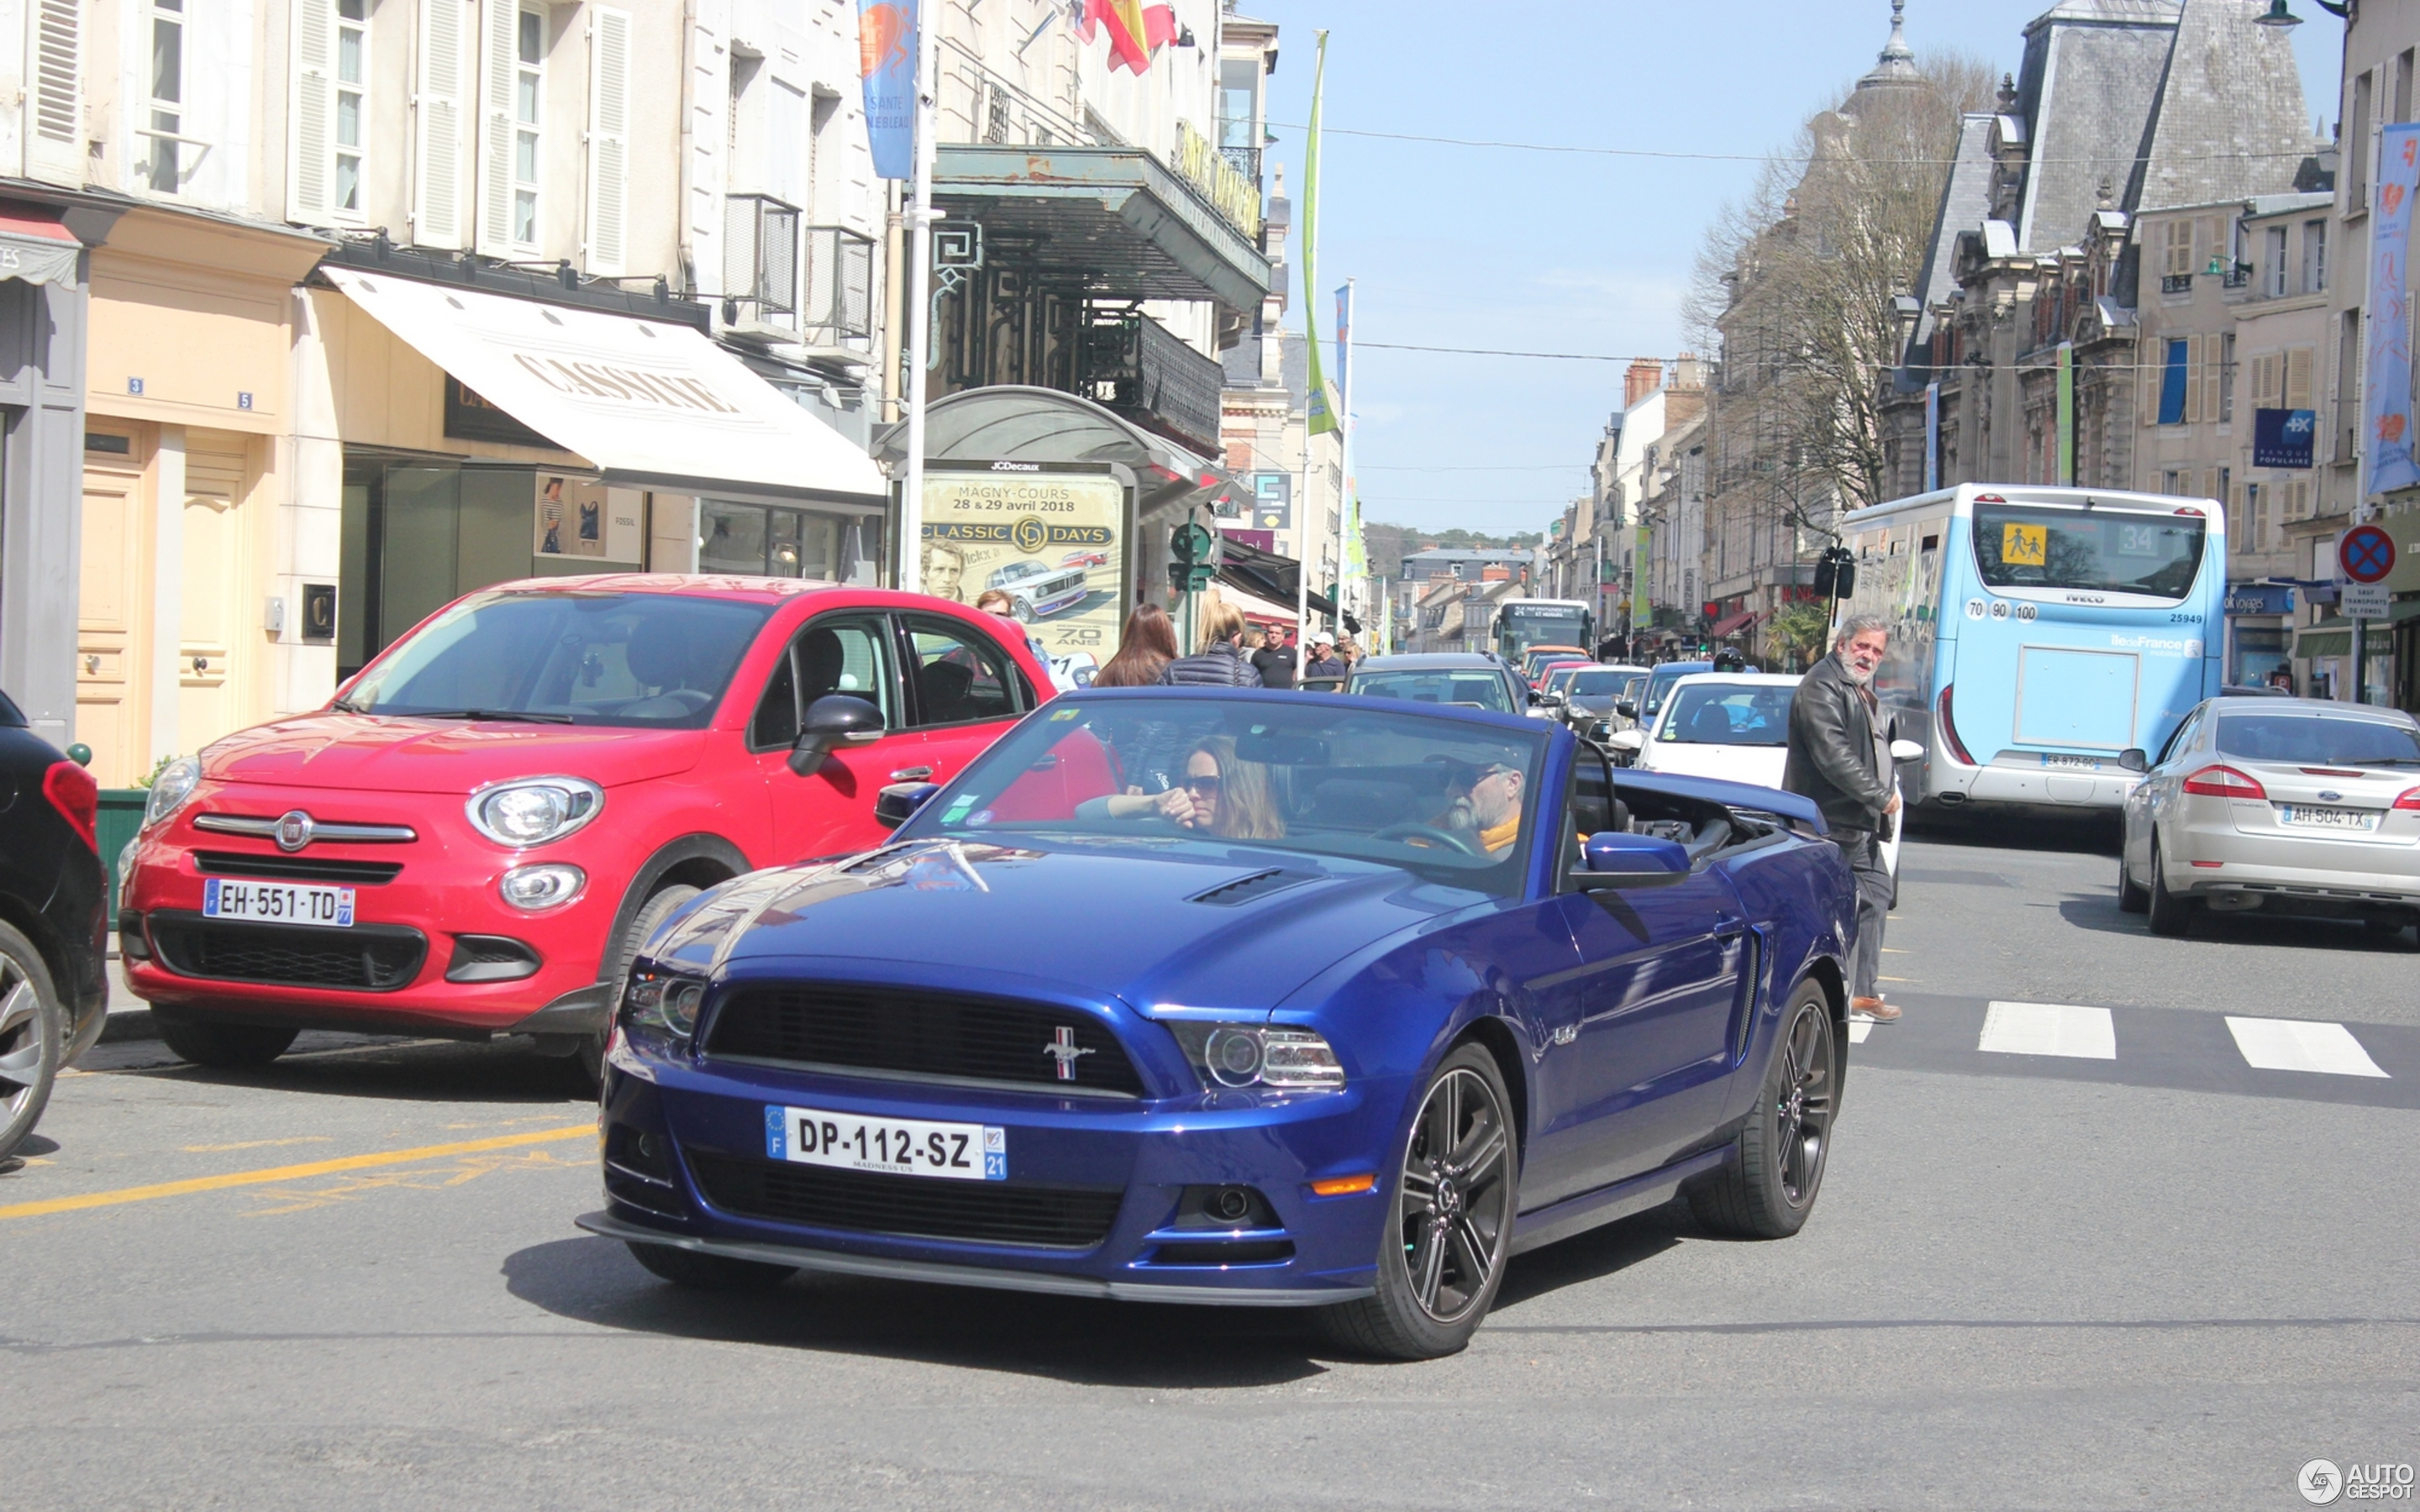 Ford Mustang Gt Convertible 2013 7 April 2018 Autogespot